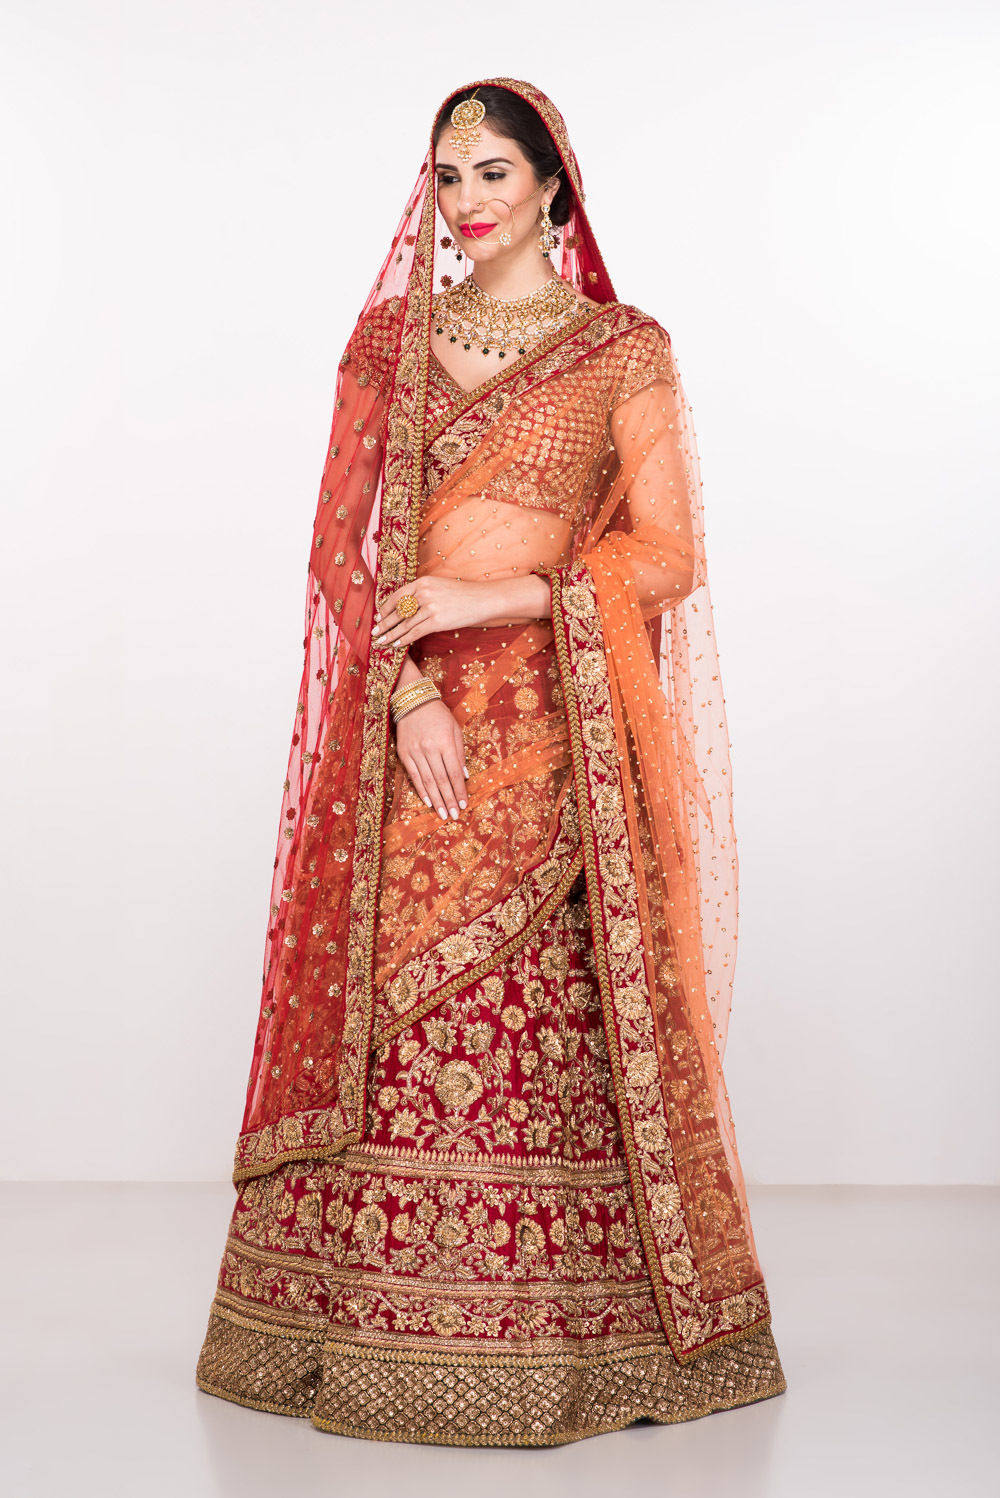 Red Heavy Bridal Sabyasachi Lehenga